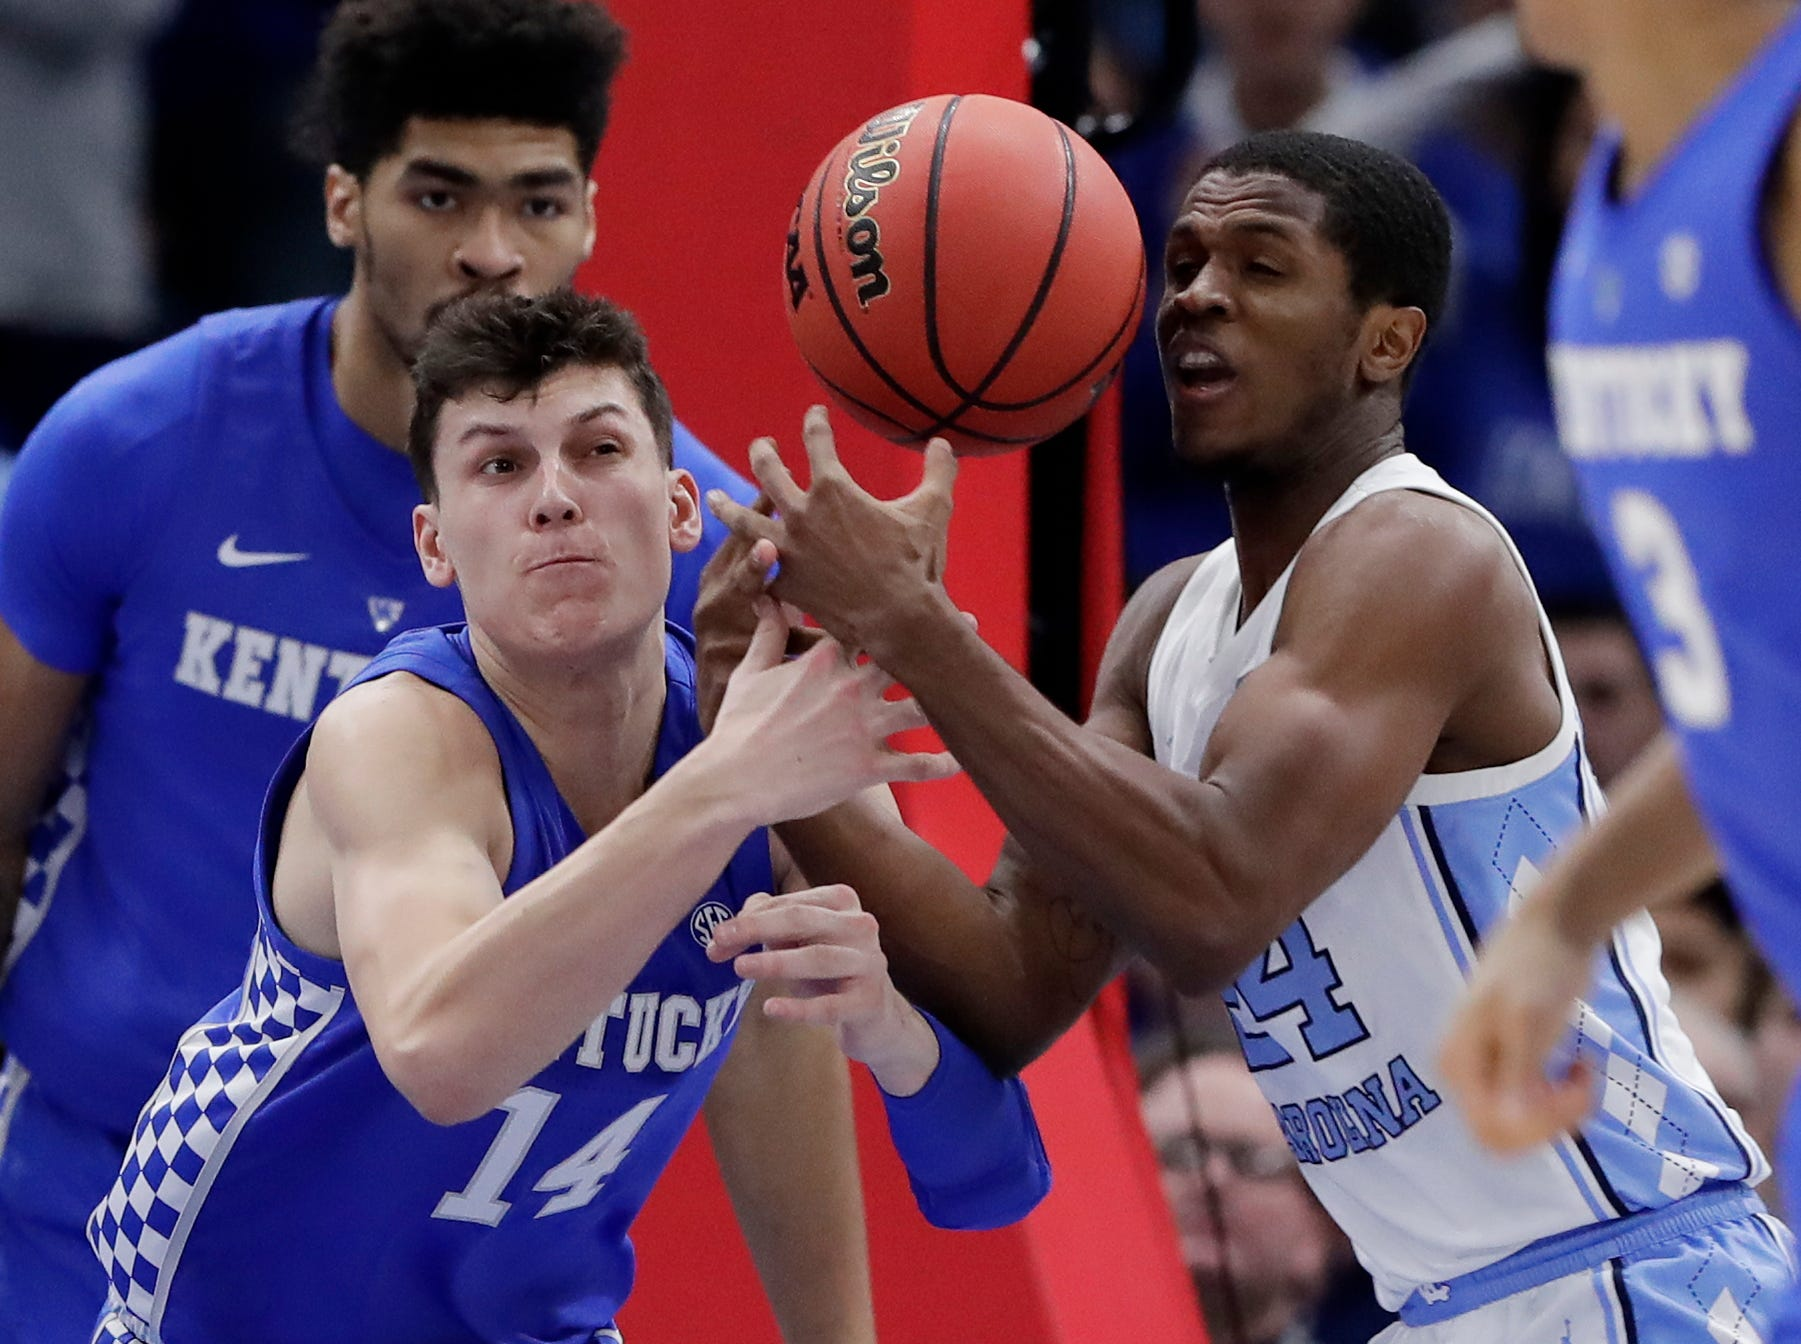 Kentucky guard/forward Tyler Herro, left, and North Carolina guard Kenny Williams battle for the ball during the second half of an NCAA college basketball game in the fifth annual CBS Sports Classic, Saturday, Dec. 22, 2018, in Chicago.